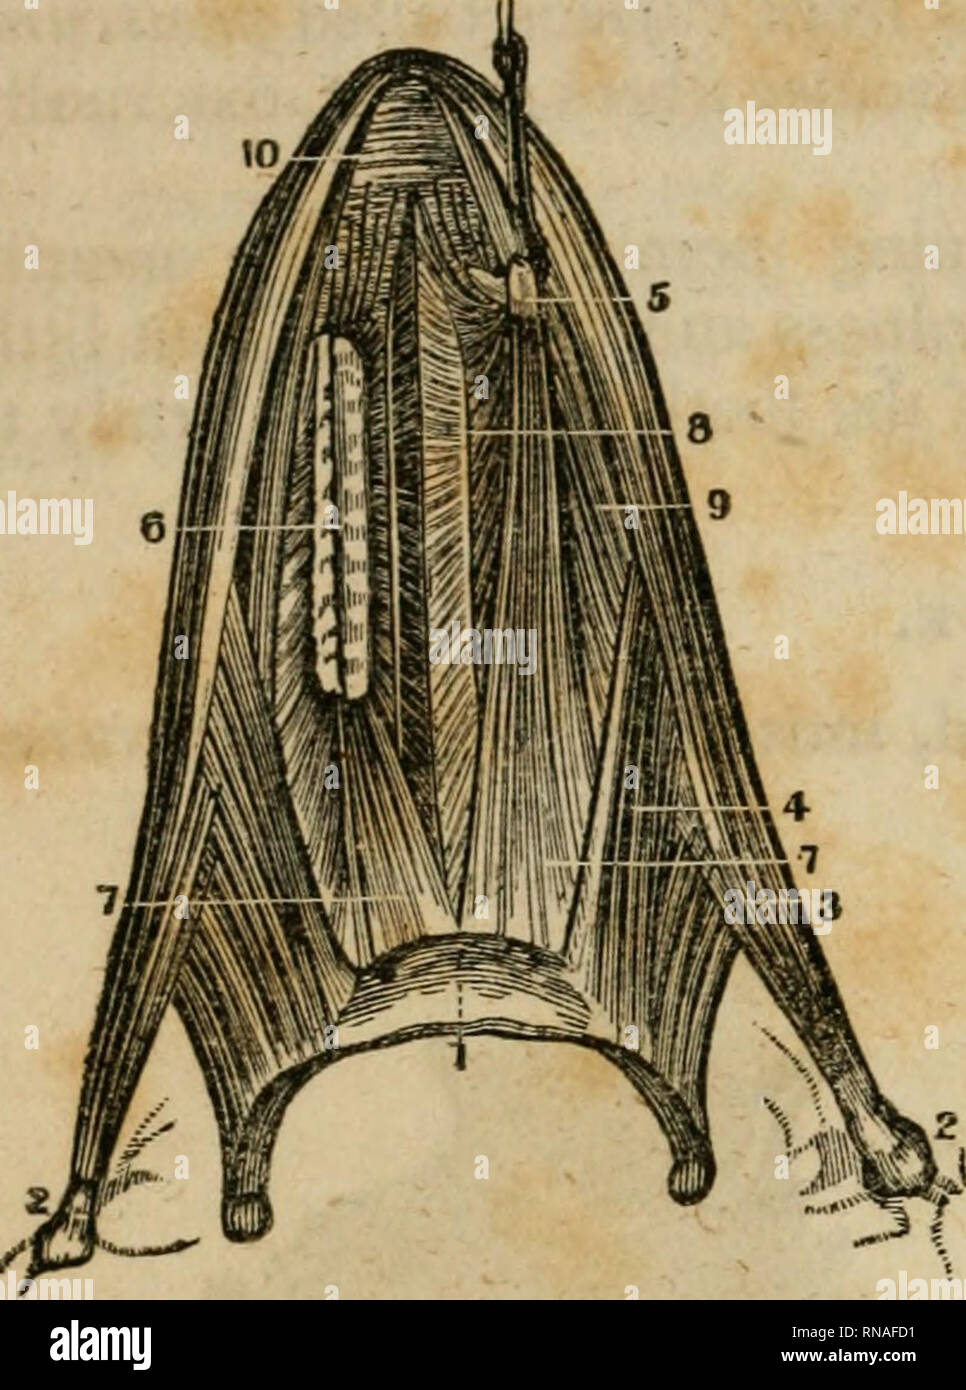 . An analytical compendium of the various branches of medical science, for the use and examination of students. Anatomy; Physiology; Surgery; Obstetrics; Medicine; Materia Medica. 98 THE PALATE. and corner of the hyoid Fig. 80.. bone. Ivsertion^ into the side of the tongue, some of the fibres reaching its lip. Genio-hyo- glossus.^ — Origin, by a tubercle behind the symphysis of the lower jaw. Insertion, into the hyoid bone, and into the whole length of the tongue. Lingualis.^—Origin, from the yellow tissue at the root of the tongue. Insertion, into the tip, be- tween the two last mentioned mus - Stock Image